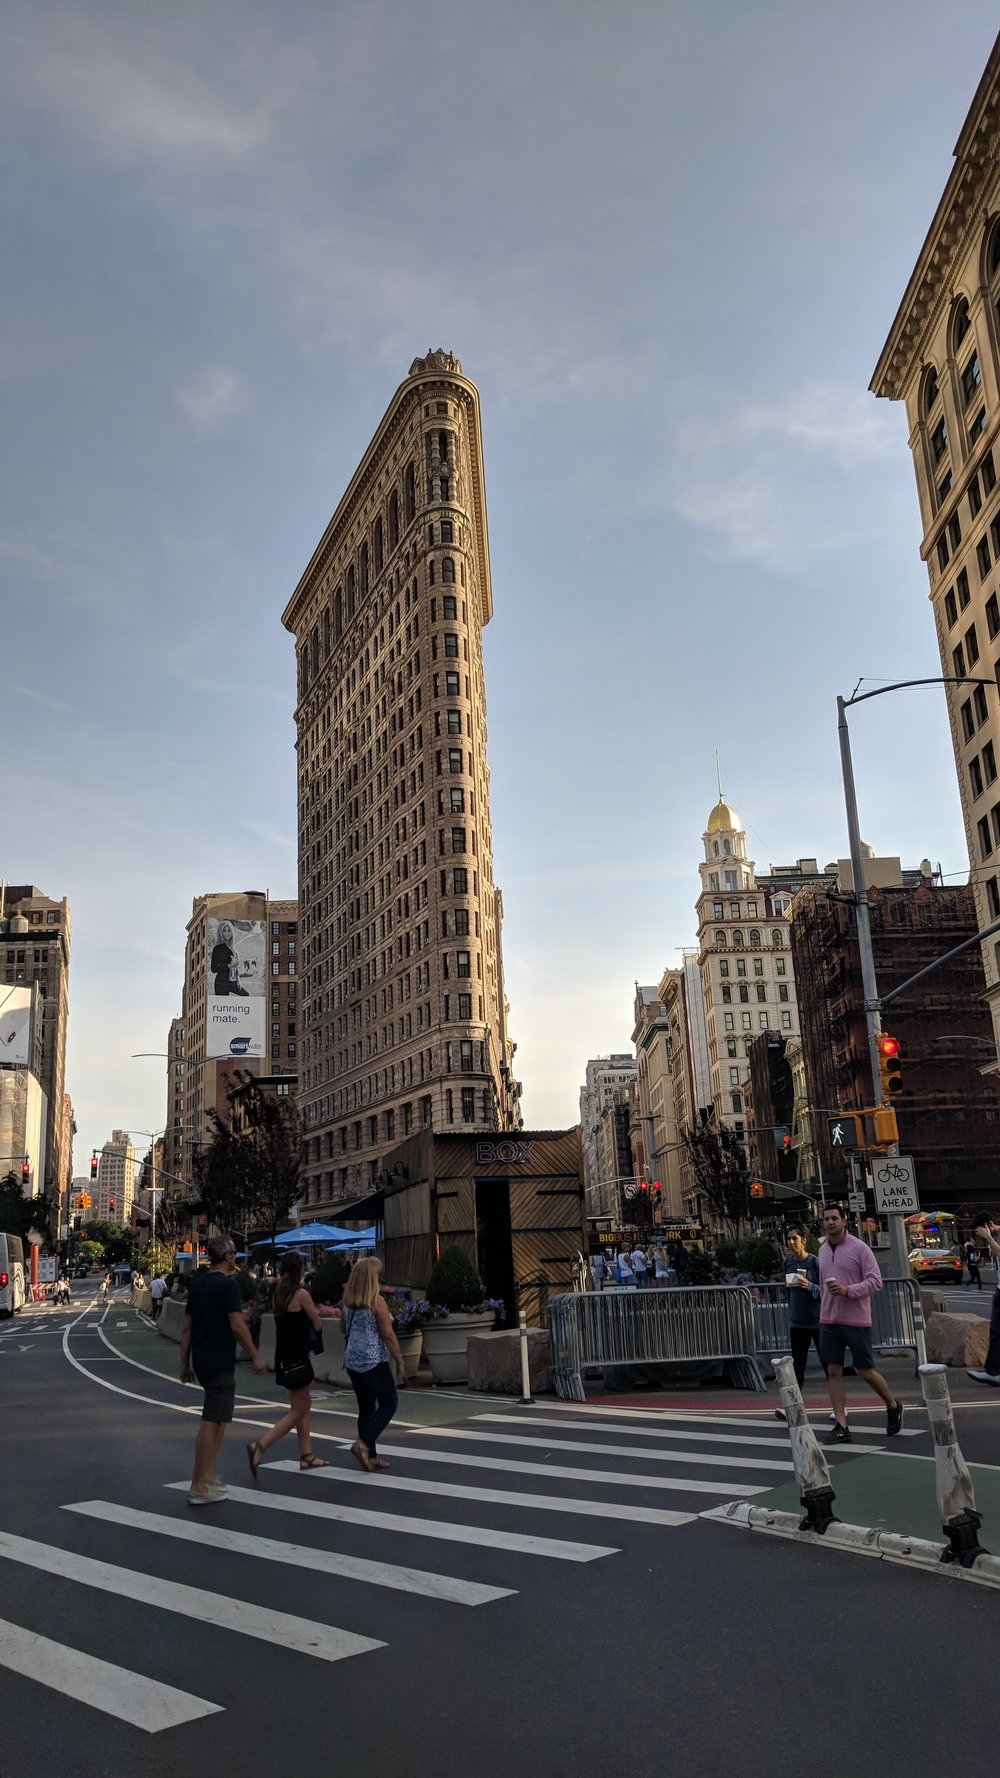 (This is the Flatiron Building)